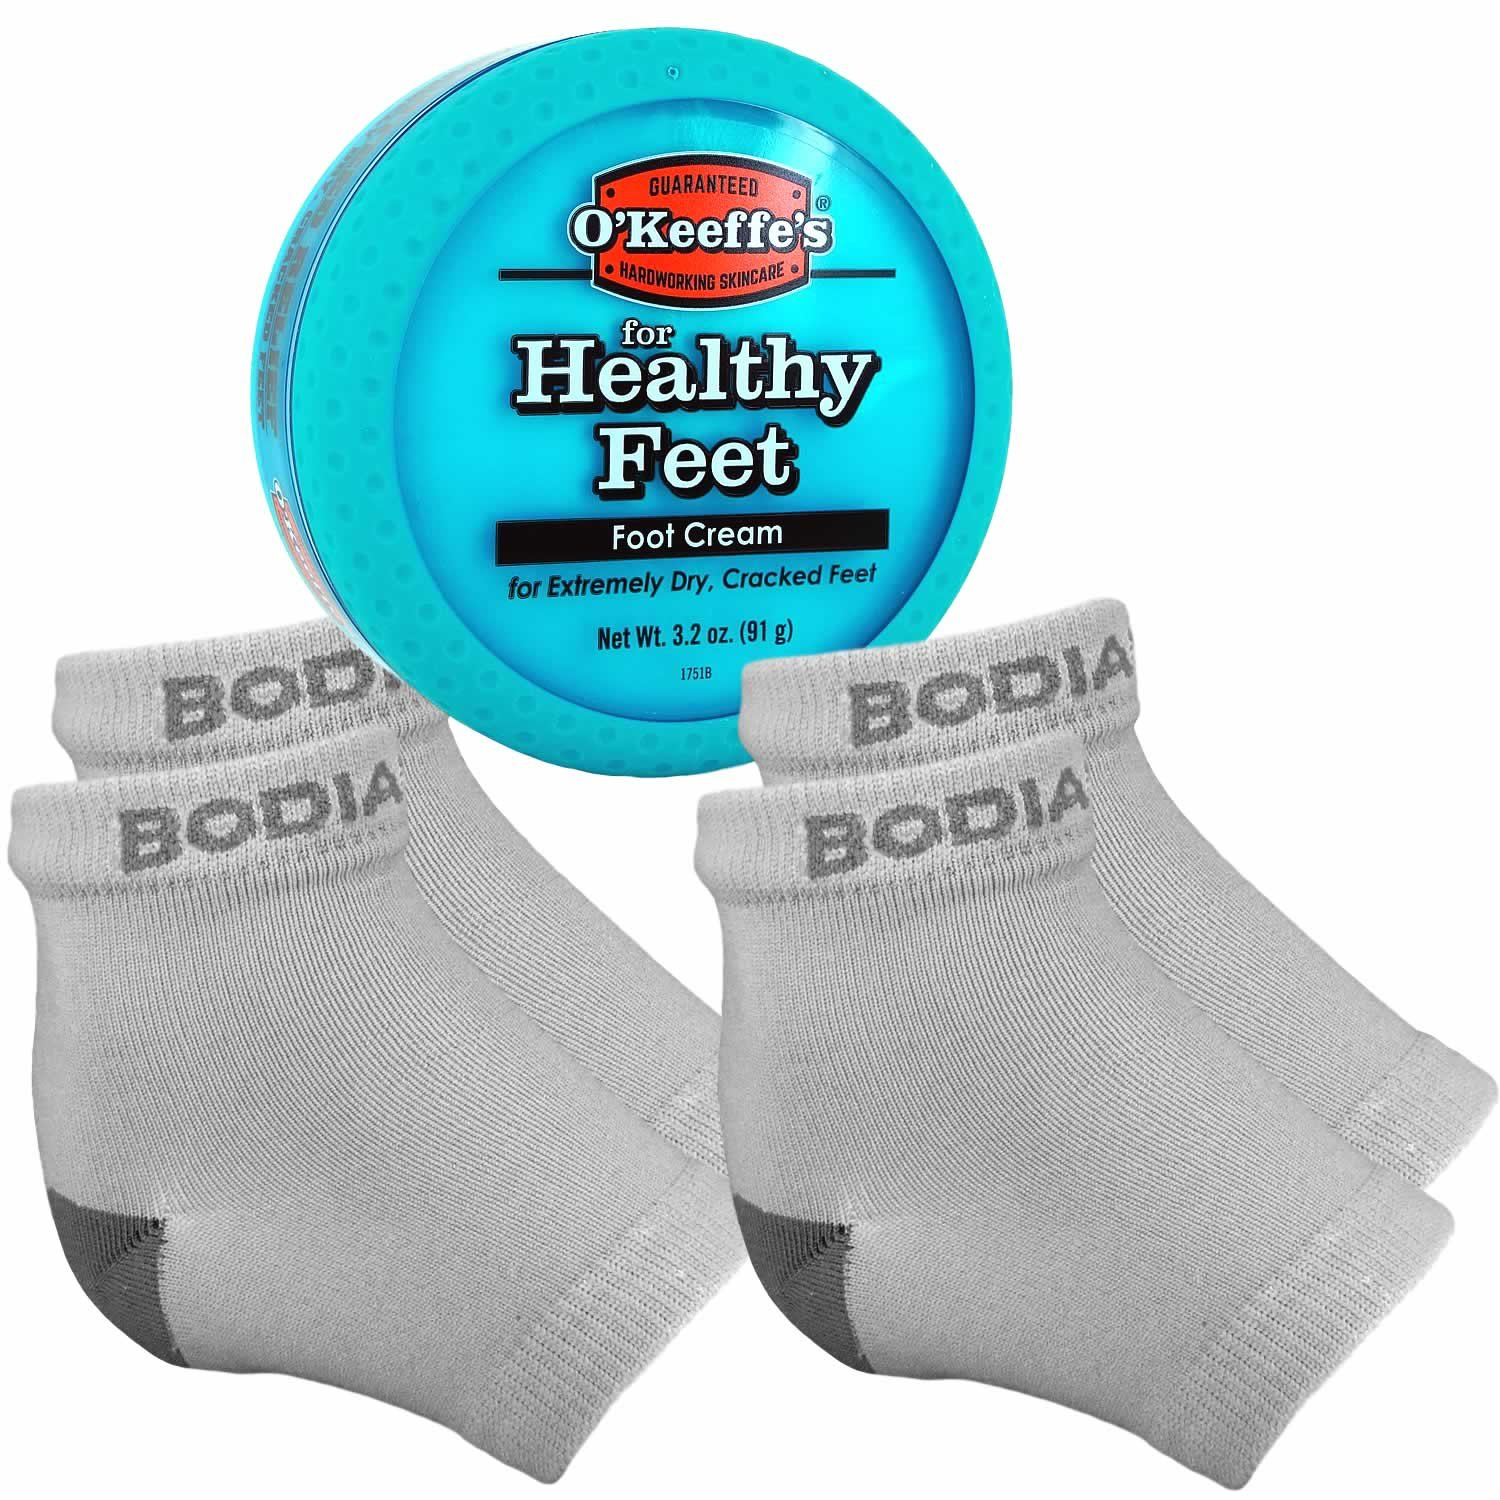 Dry Cracked Heels Repair Bundle with Open Toe Moisturizing Silicone Gel Heel Socks (2 Pairs, Gray) and O'Keeffe's Healthy Feet Cream Jar for Home Foot Skin Care by Bodiance